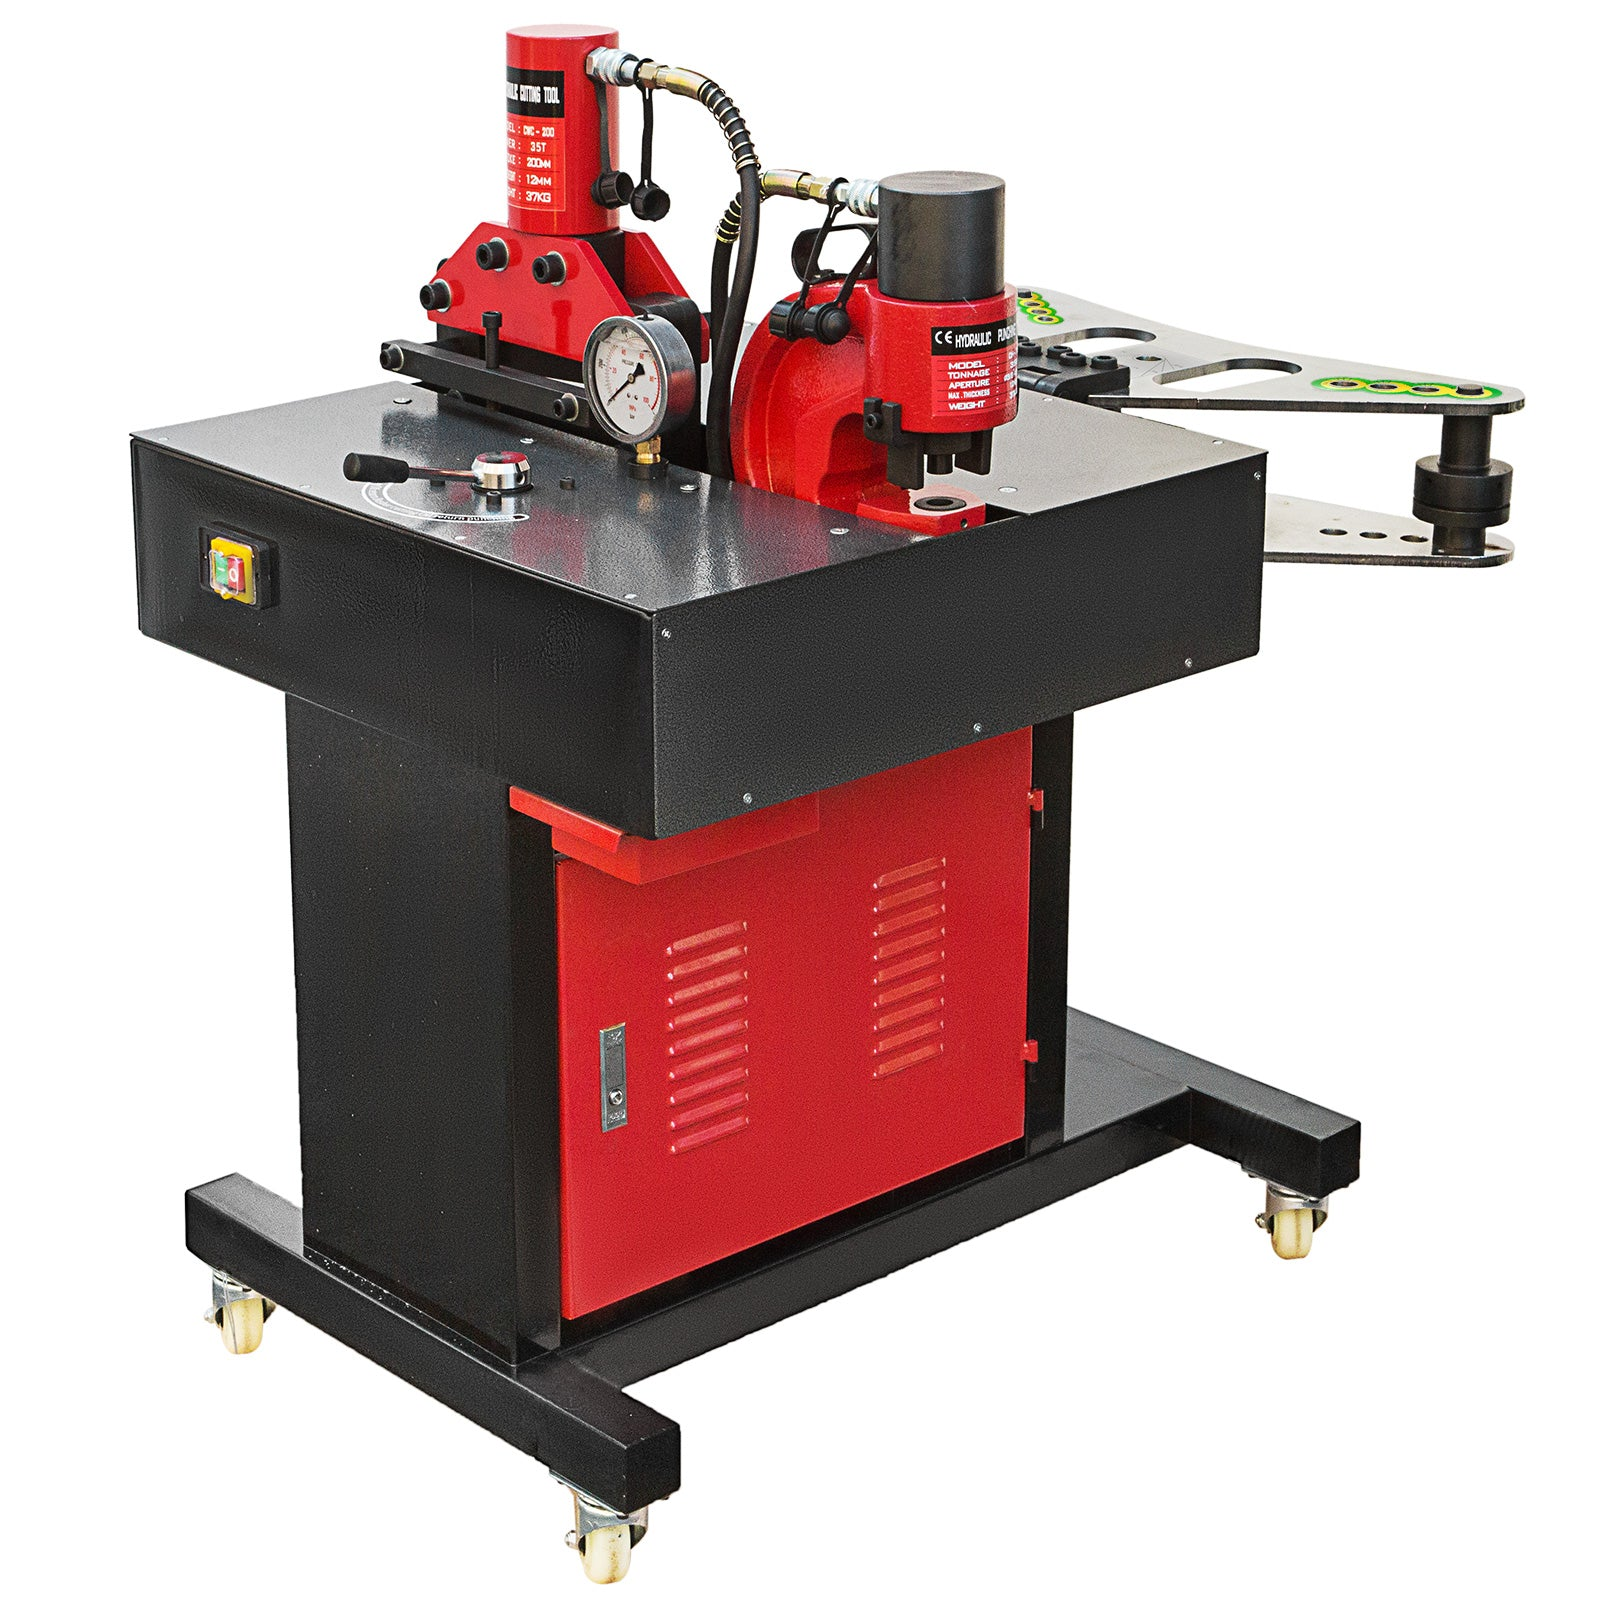 3 In 1 Electric Hydraulic Busbar Bender 35-50 Ton Vertical 4 Casters 750w